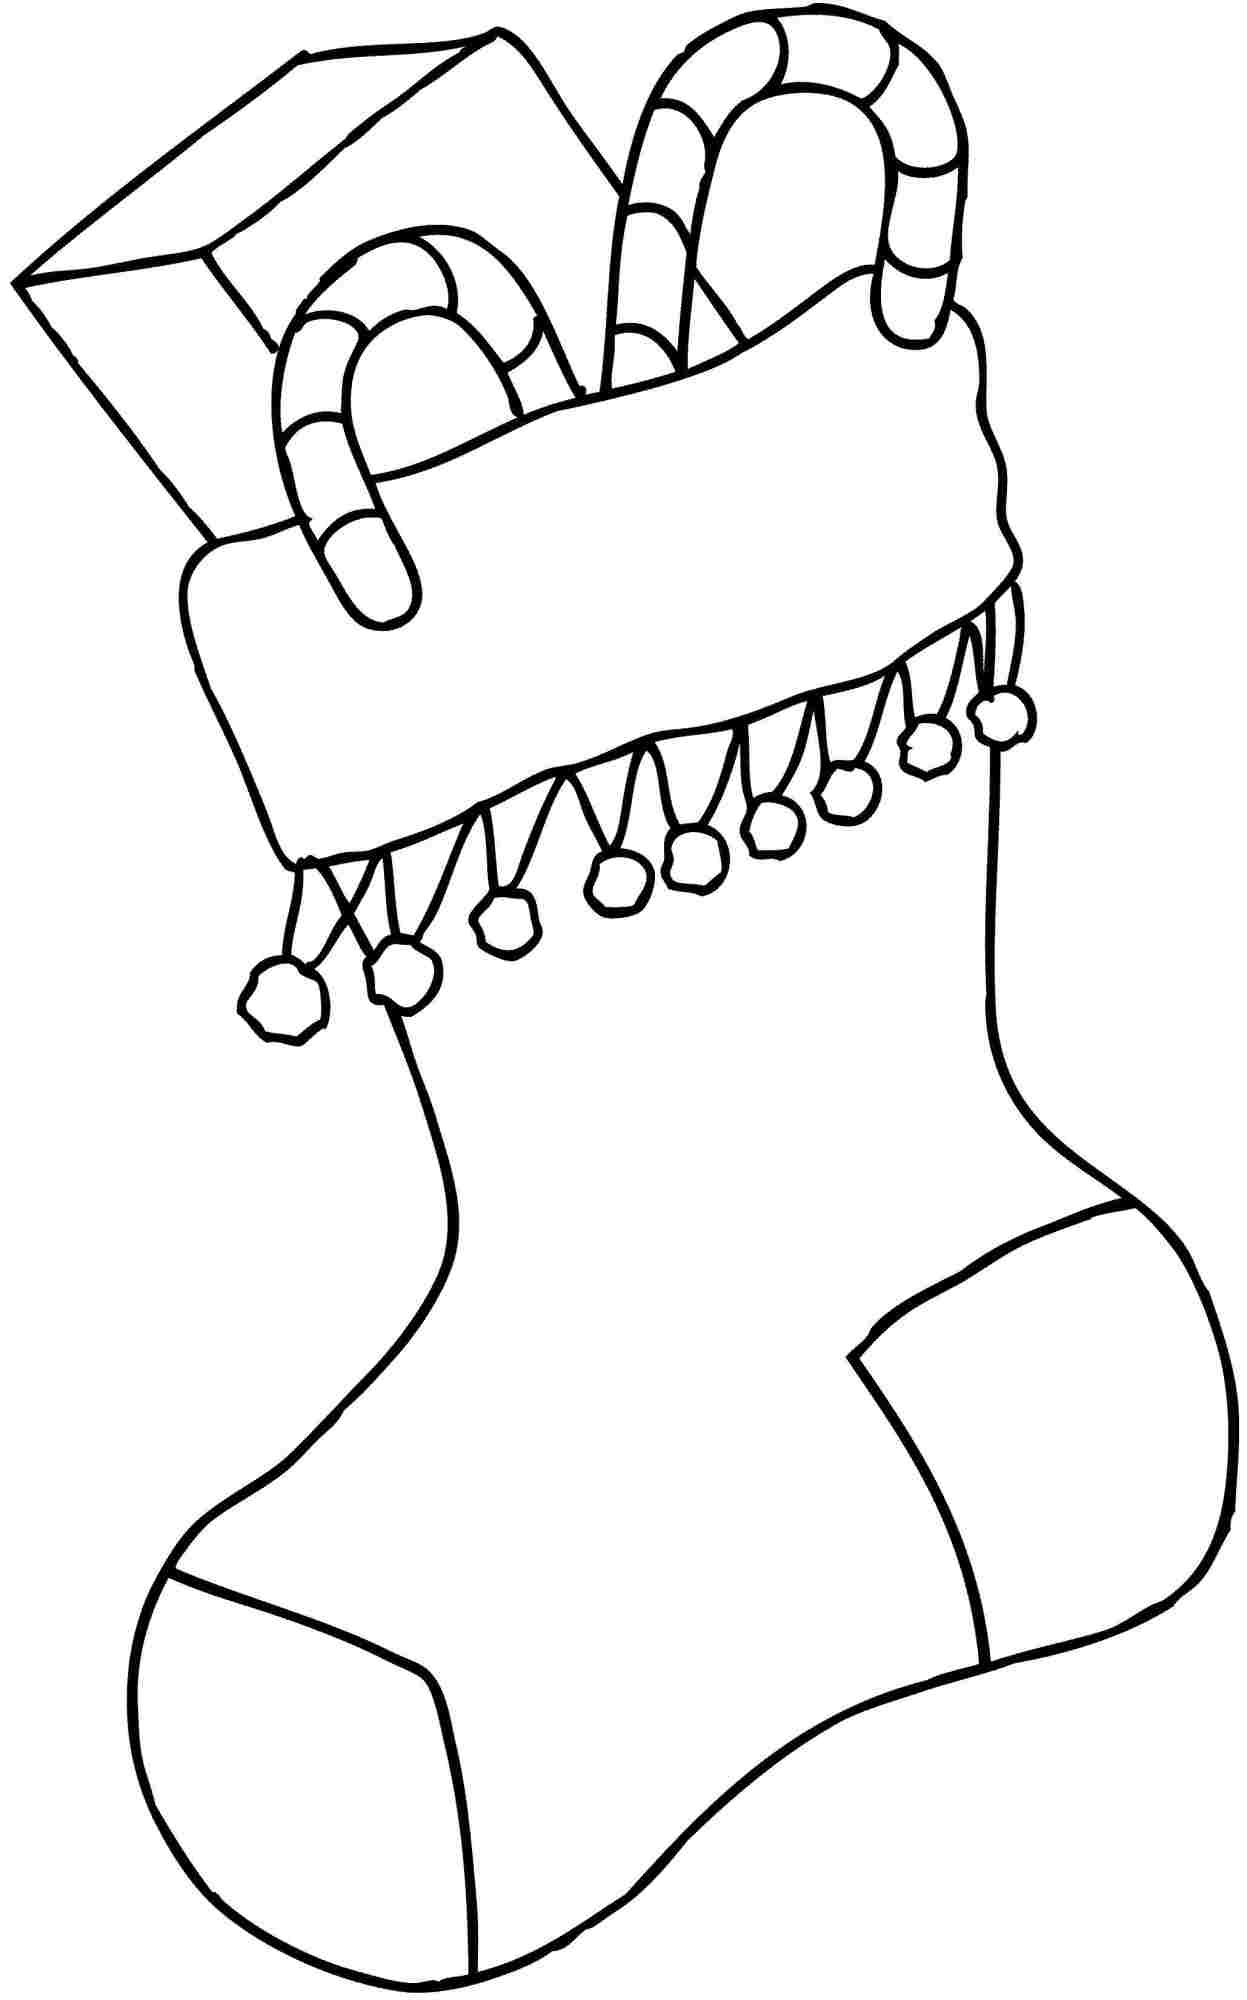 istmas coloring pages - photo#37